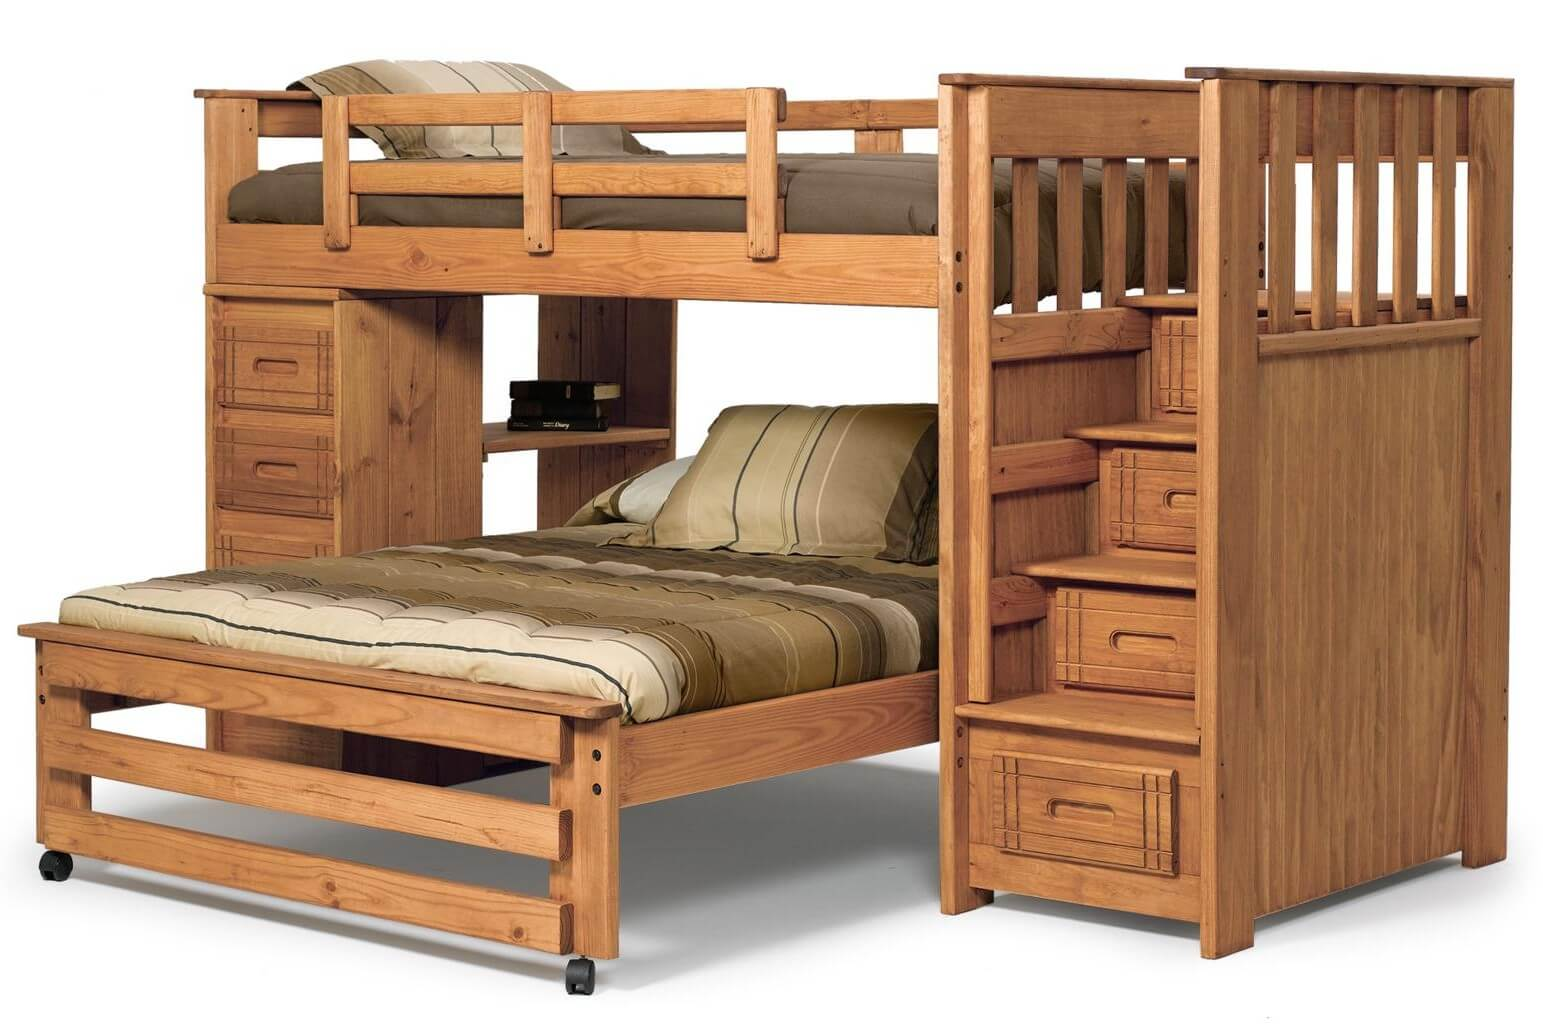 ... bunk. The lower full bed is on wheels. The side opposite to the stairs